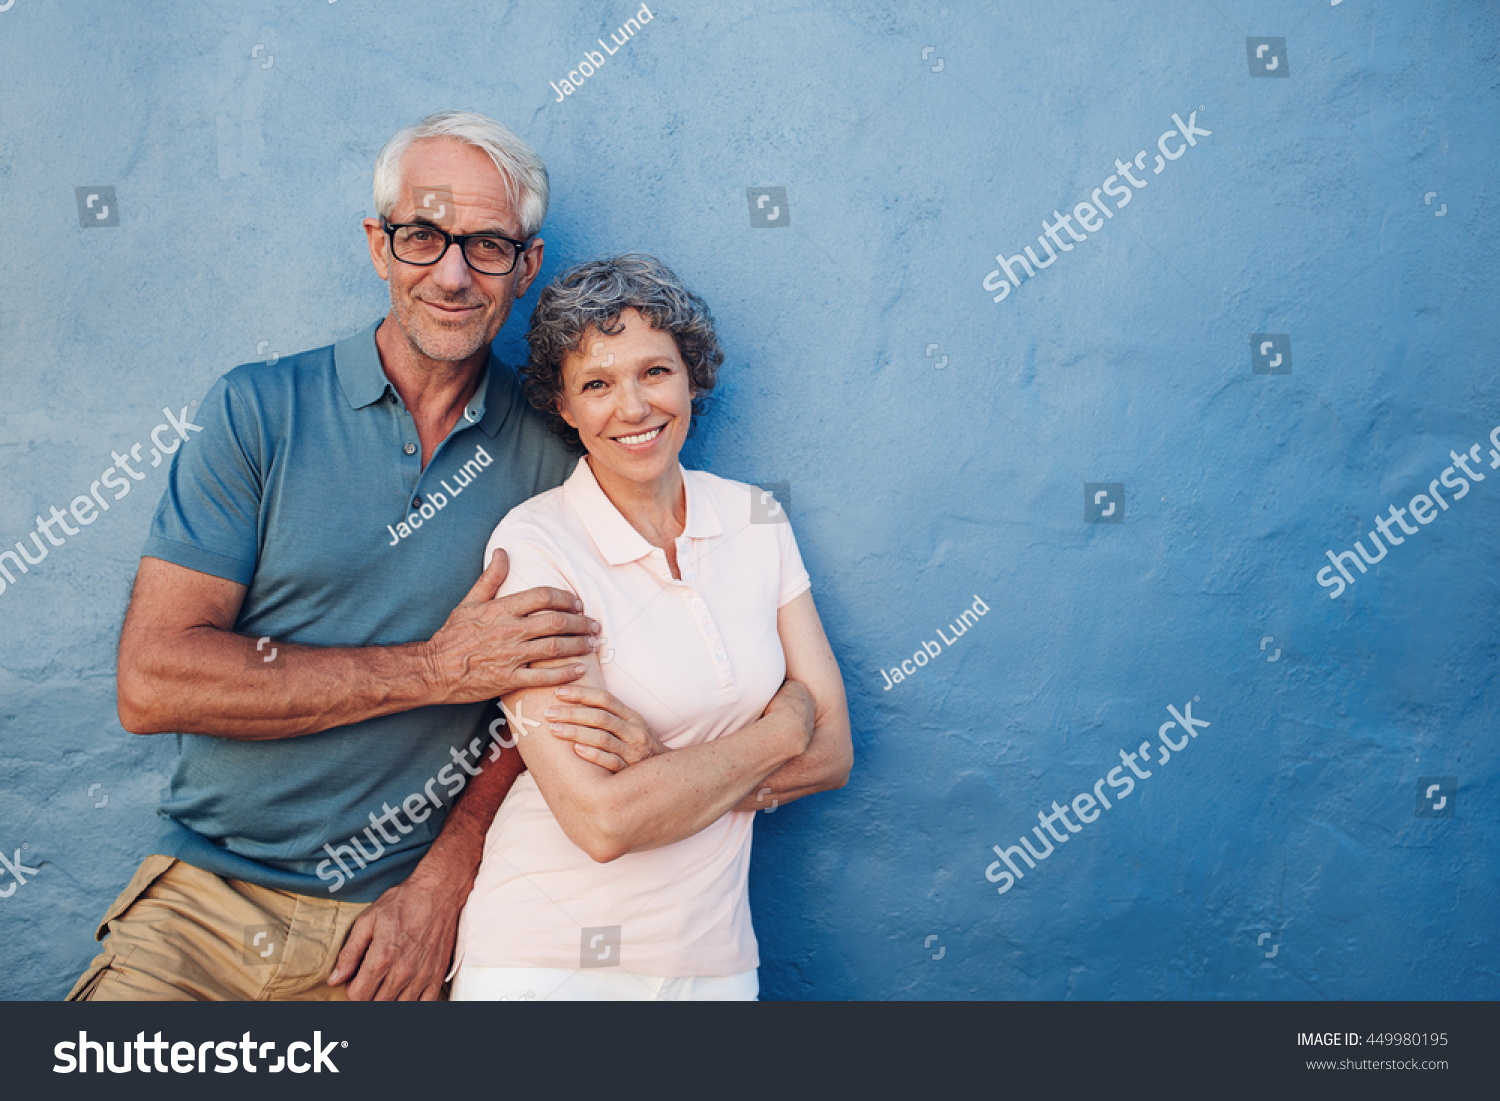 middle aged mature man looking for woman older 20 Whereas women tend to prefer men of the same age or slightly older whereas women tend to prefer men of the same age or are looking for women in their.